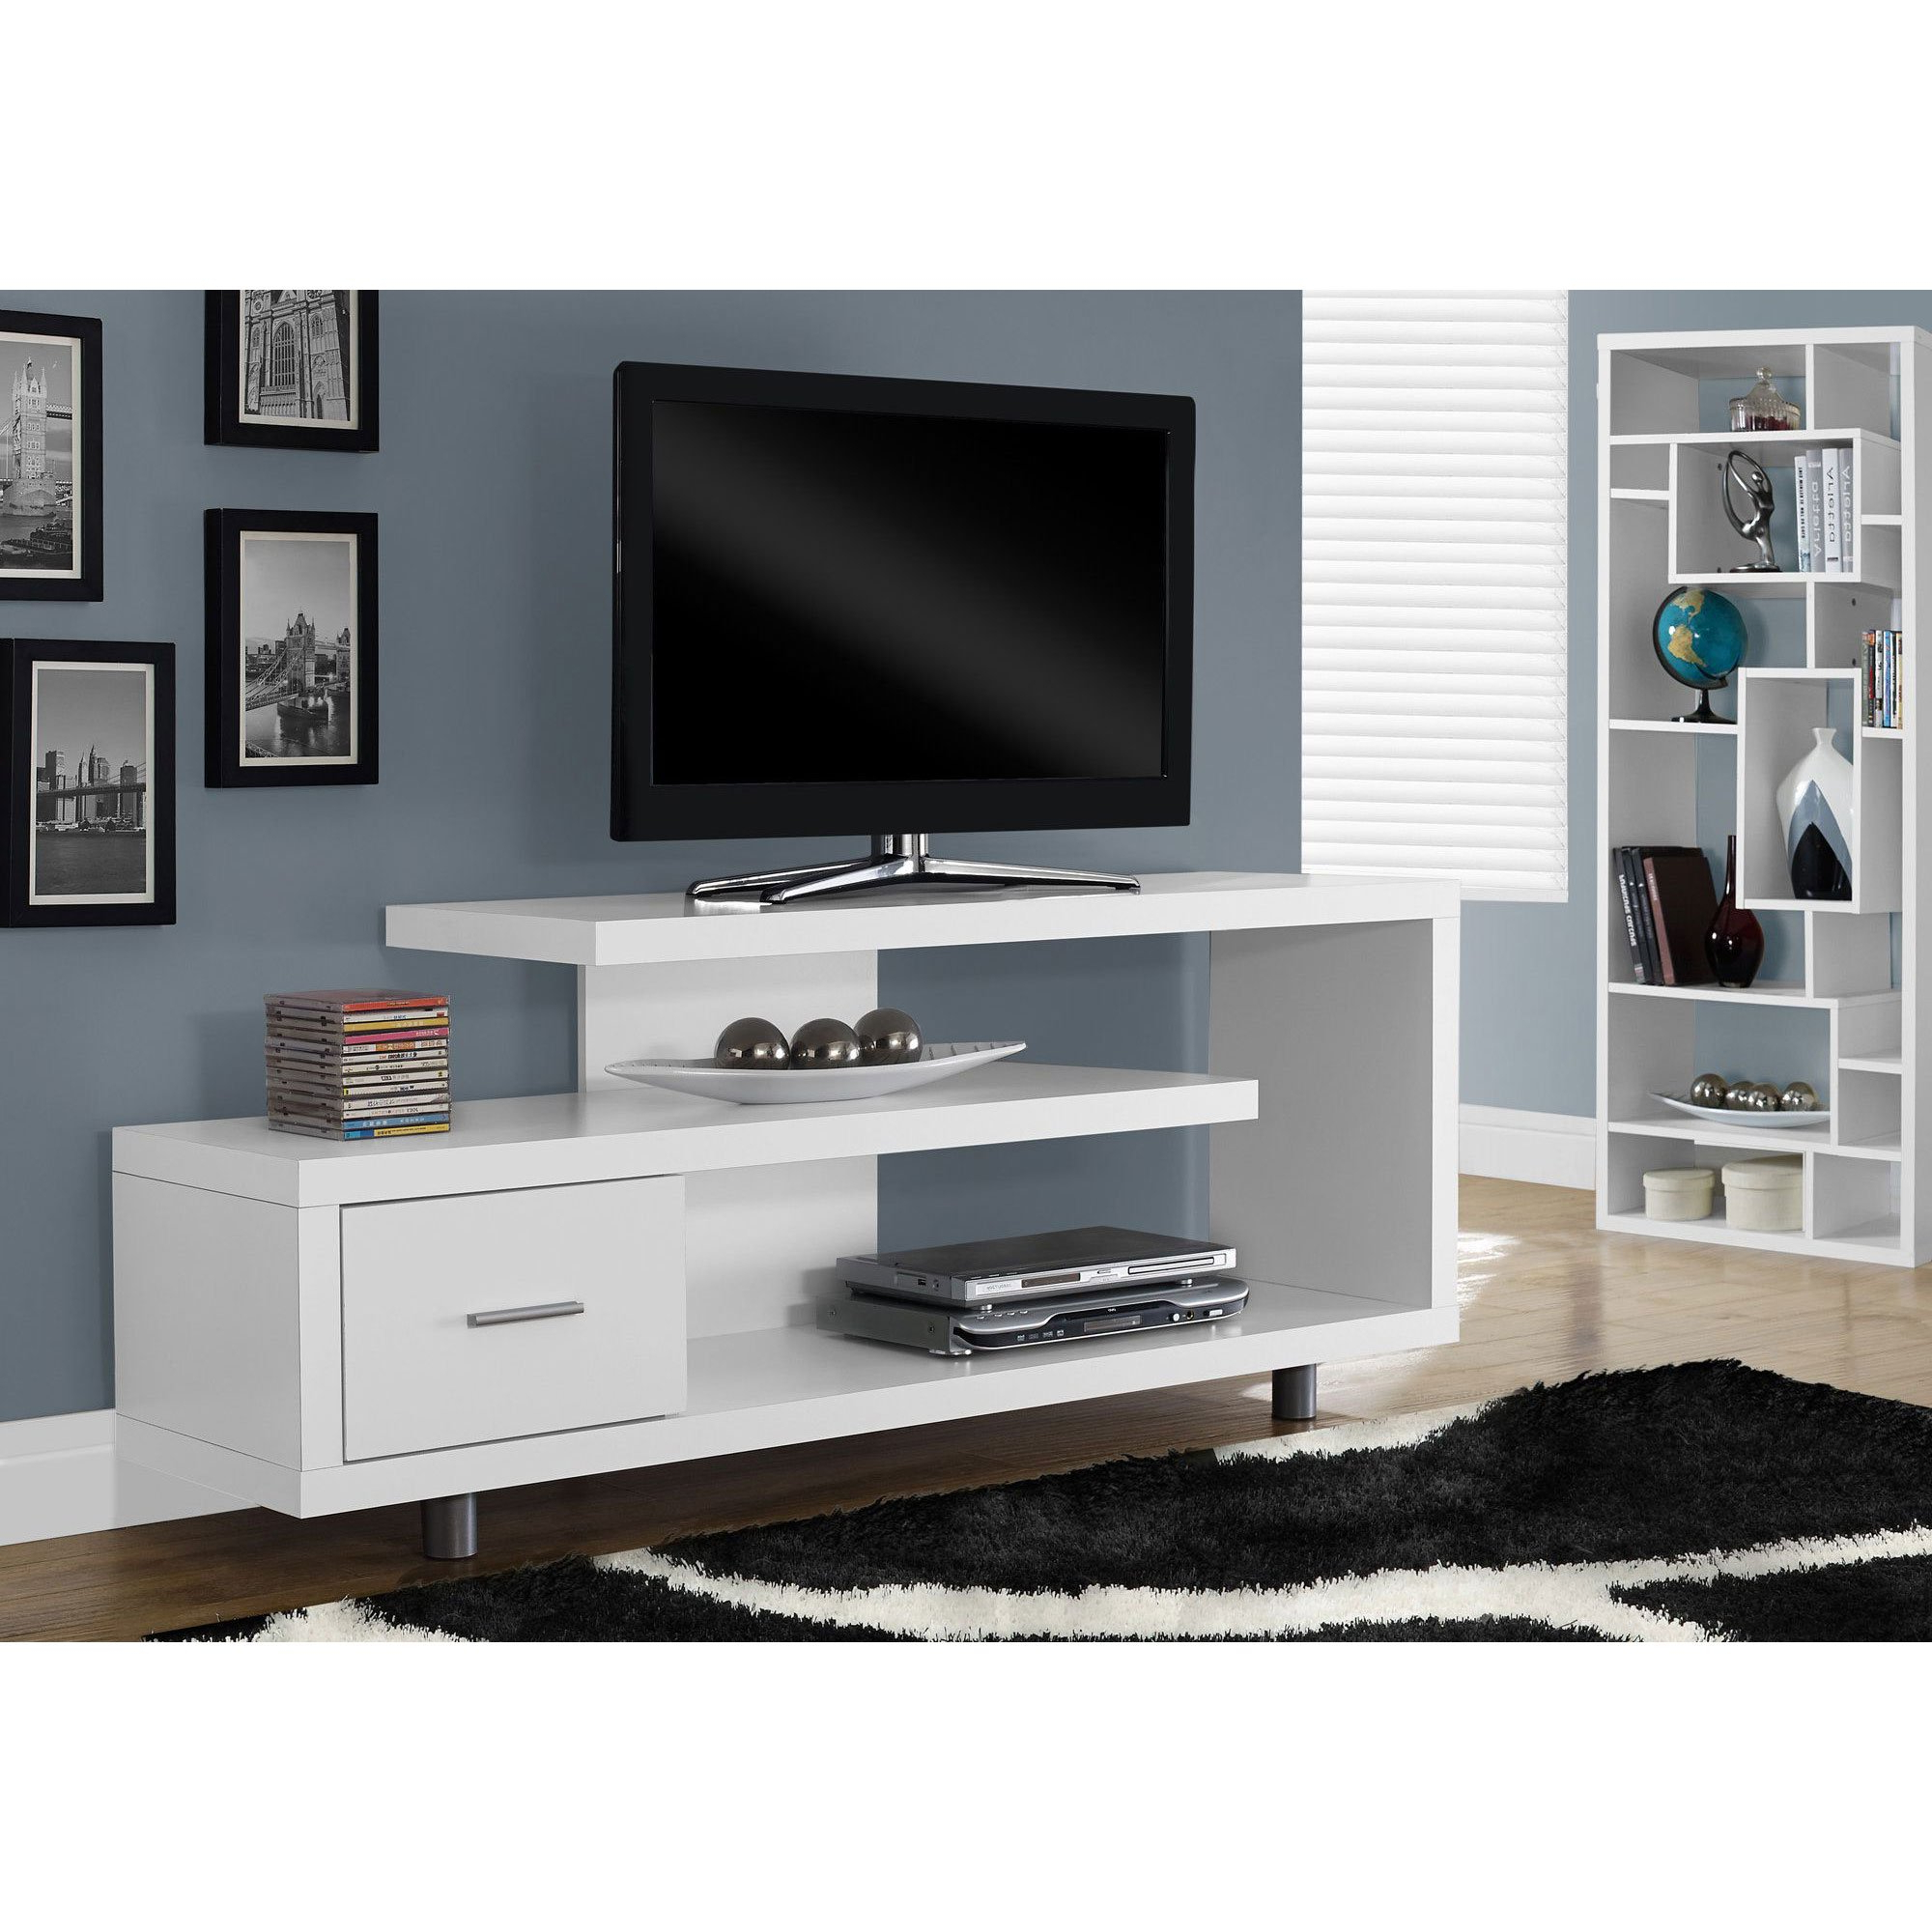 "Monarch Tv Stand White With 1 Drawer For Tvs Up To 47""l – Walmart Pertaining To Maddy 60 Inch Tv Stands (View 9 of 20)"